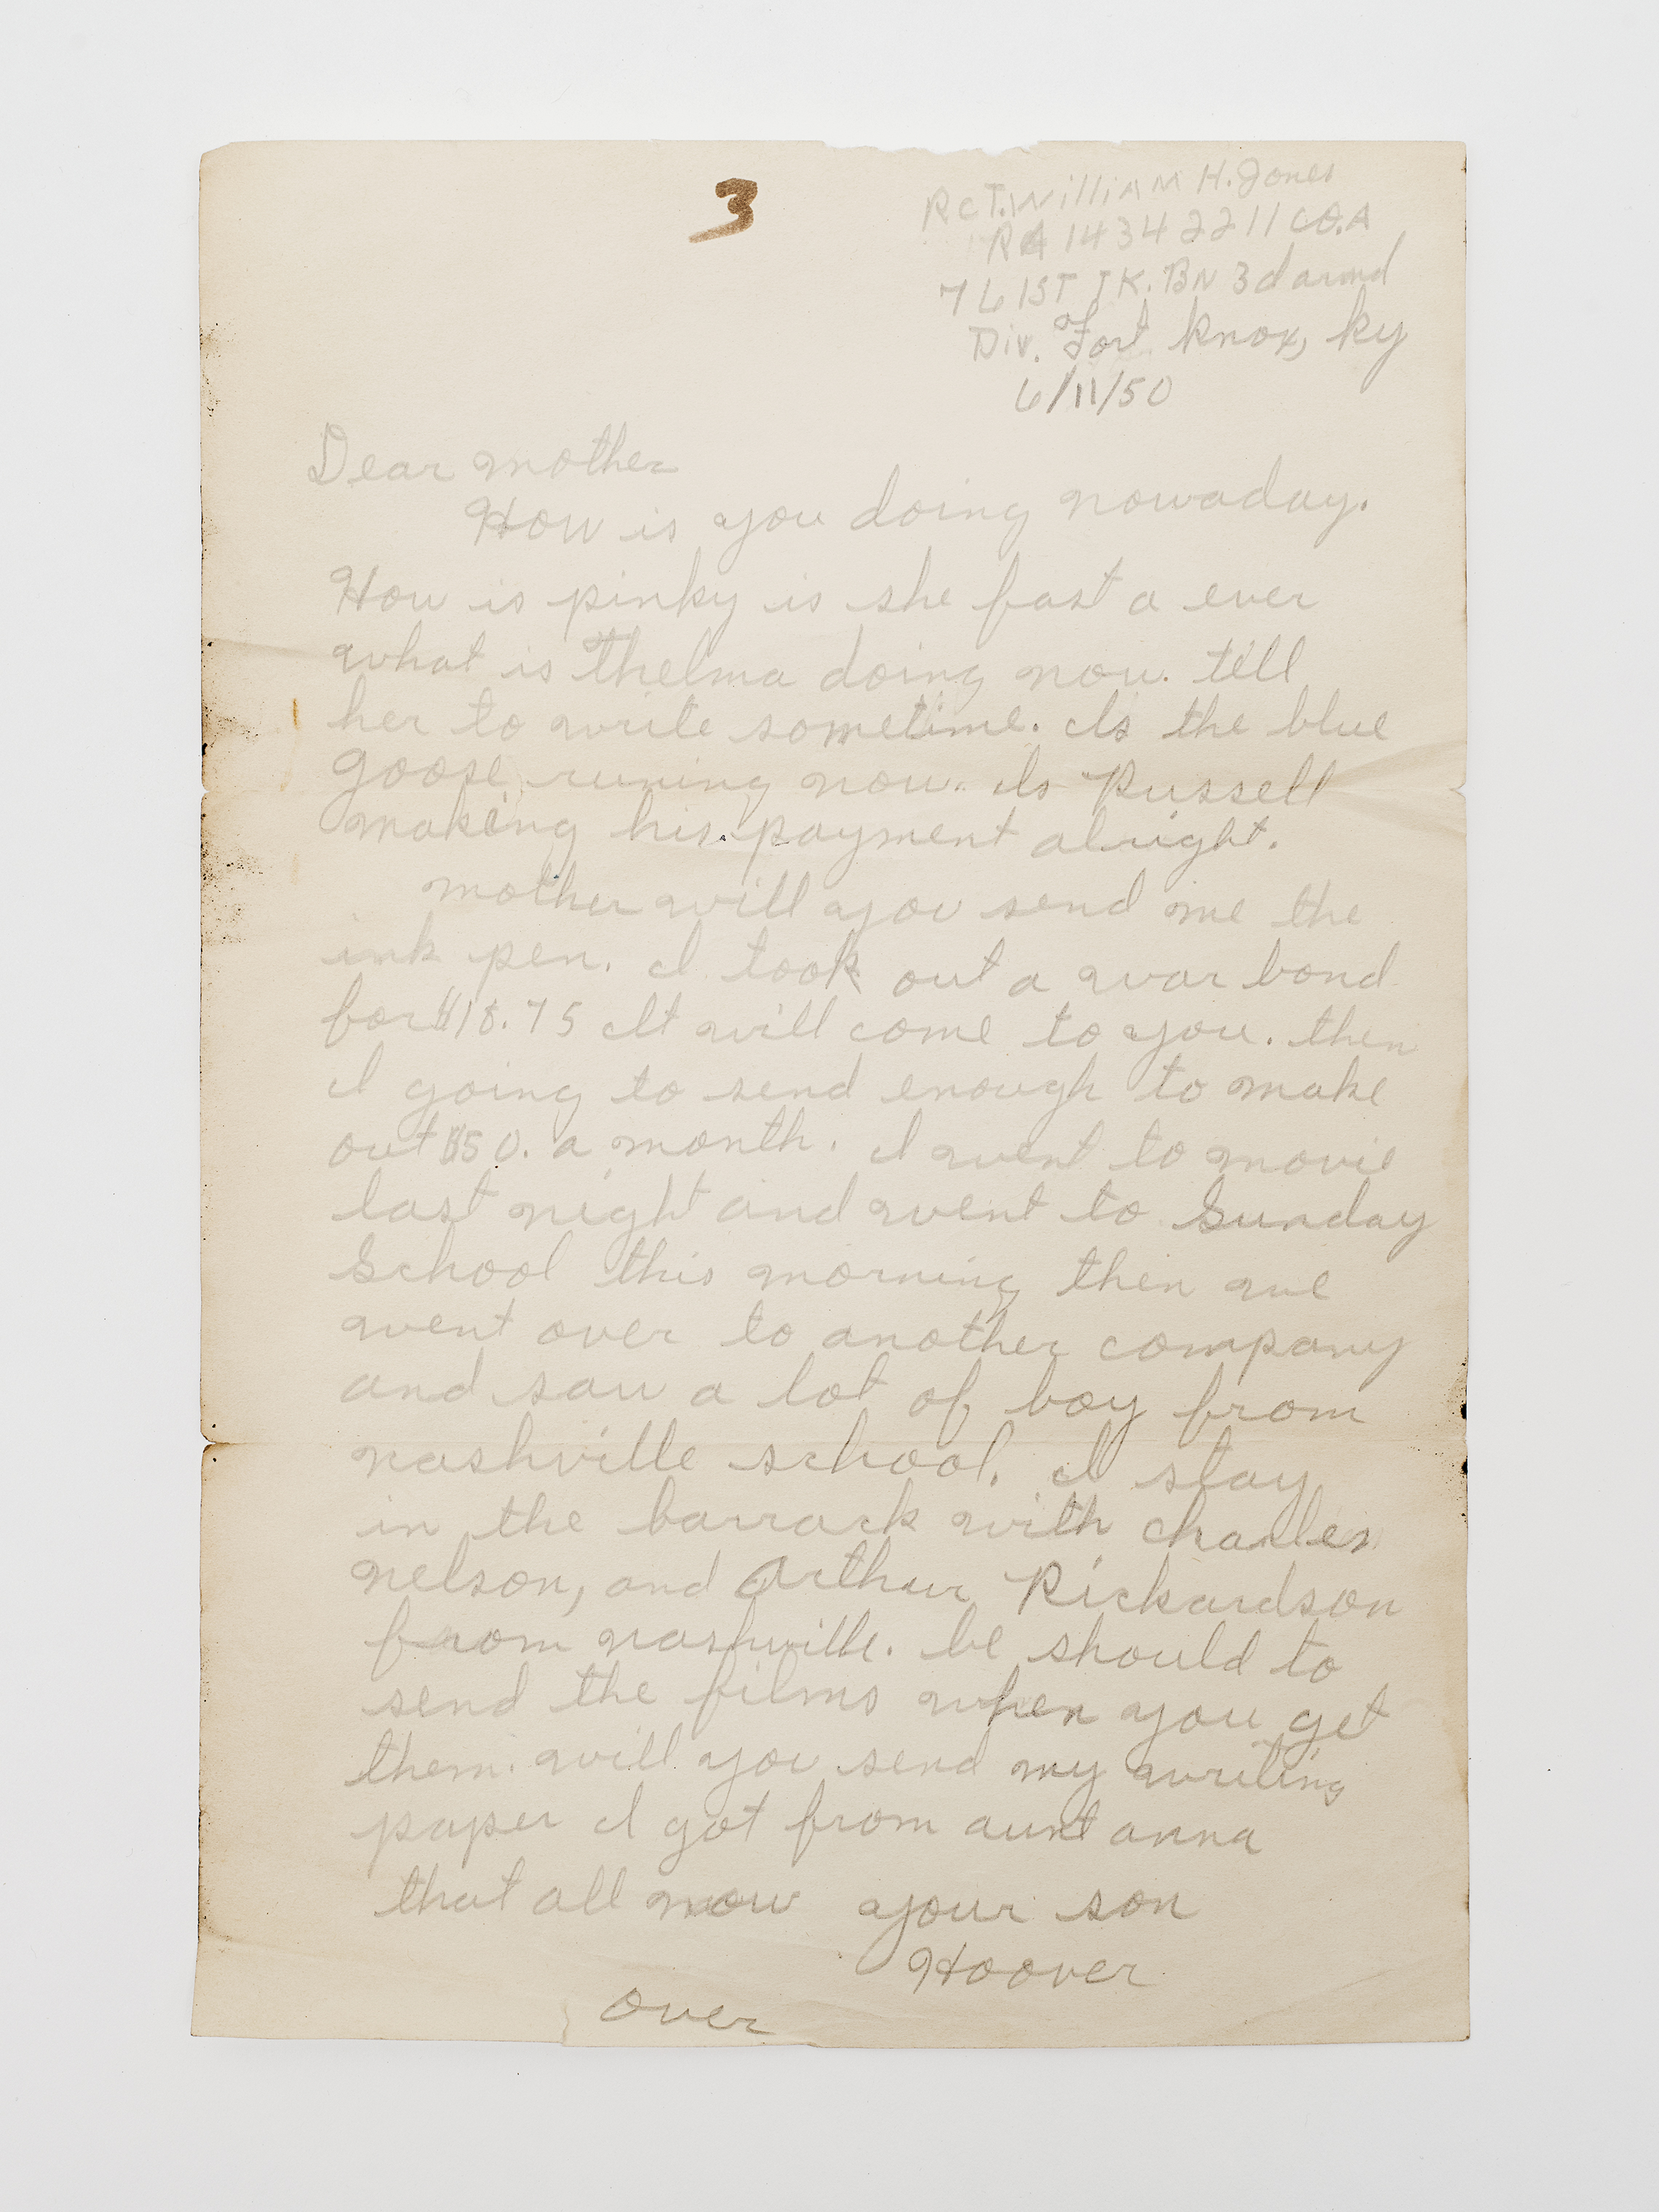 In the letter, Hoover asks for writing paper and an ink pen.